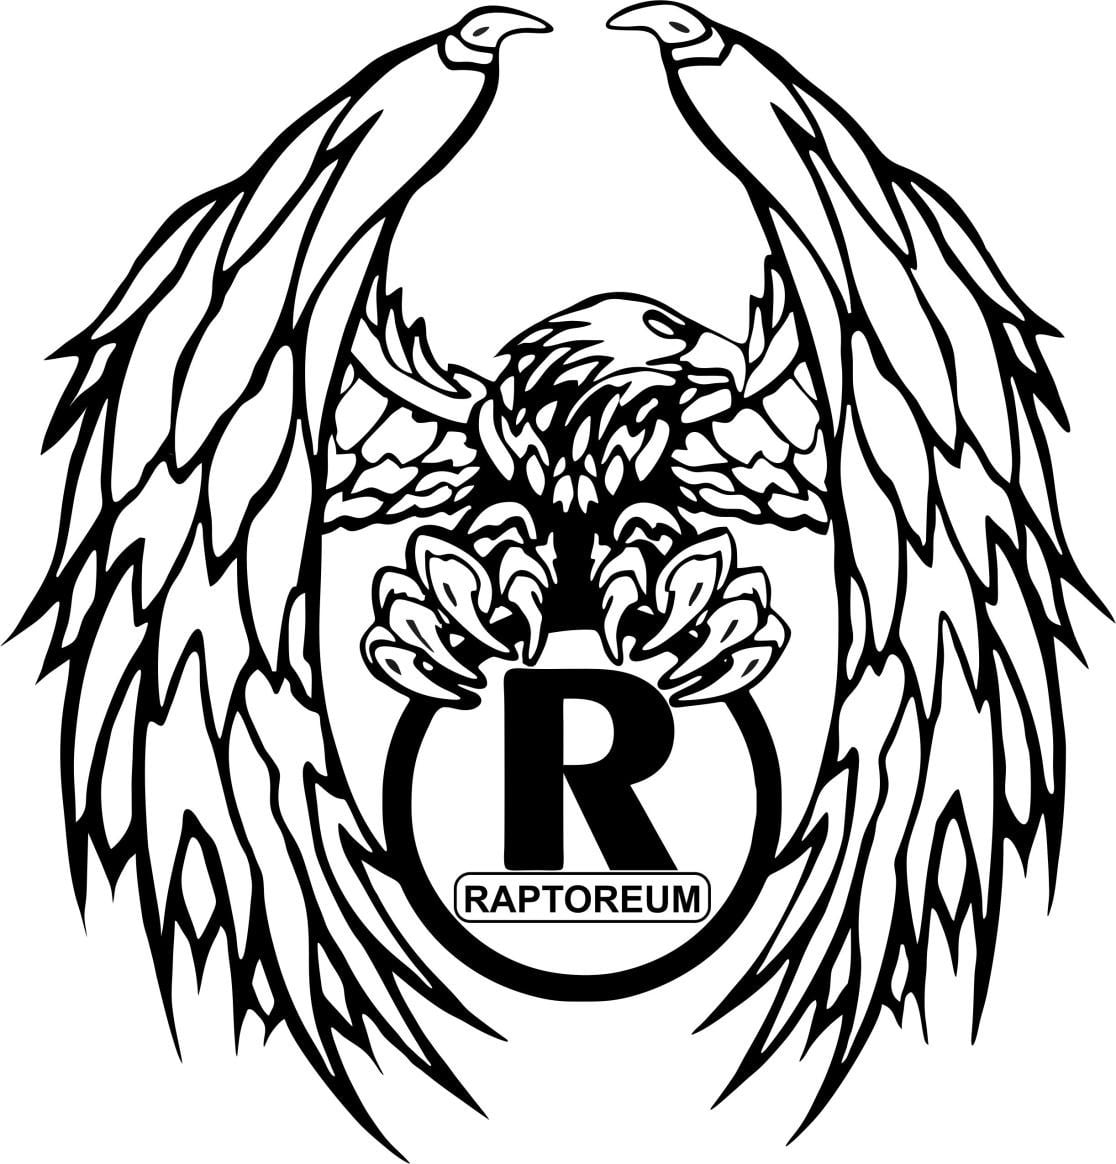 Raptoreum, What is it and what does it mean?